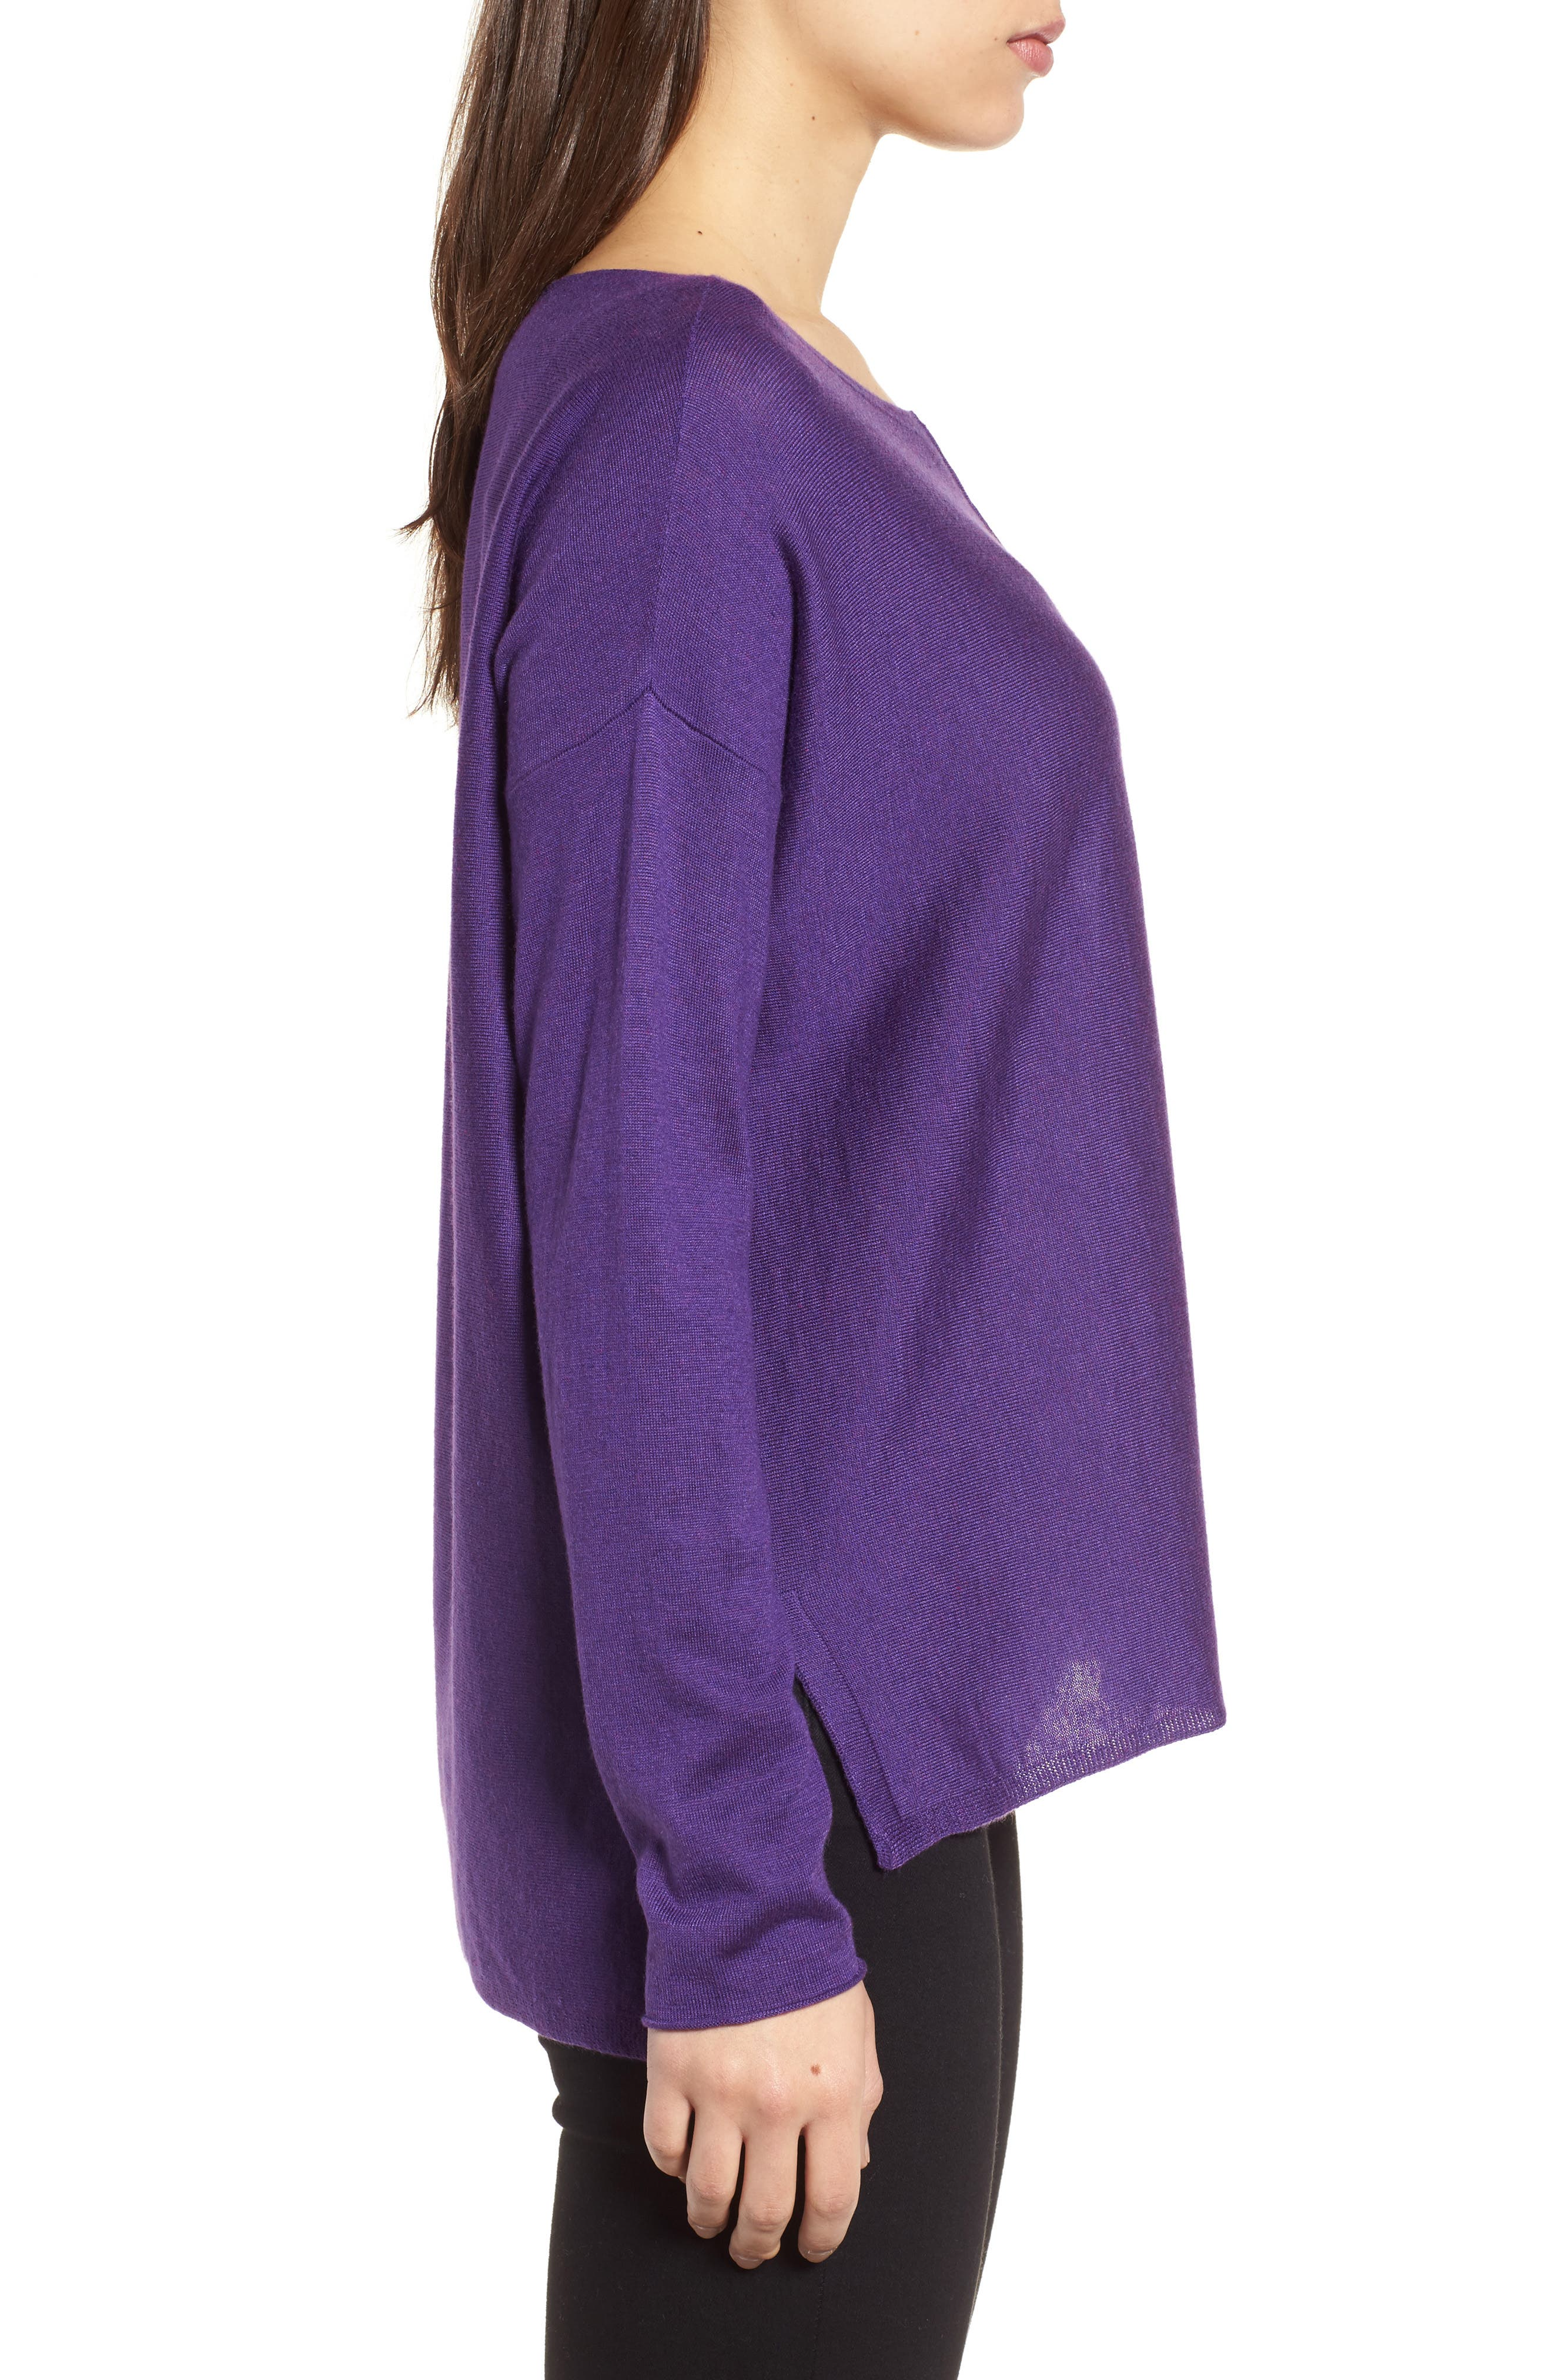 Tencel<sup>®</sup> Lyocell Blend High/Low Sweater,                             Alternate thumbnail 3, color,                             Ultraviolet